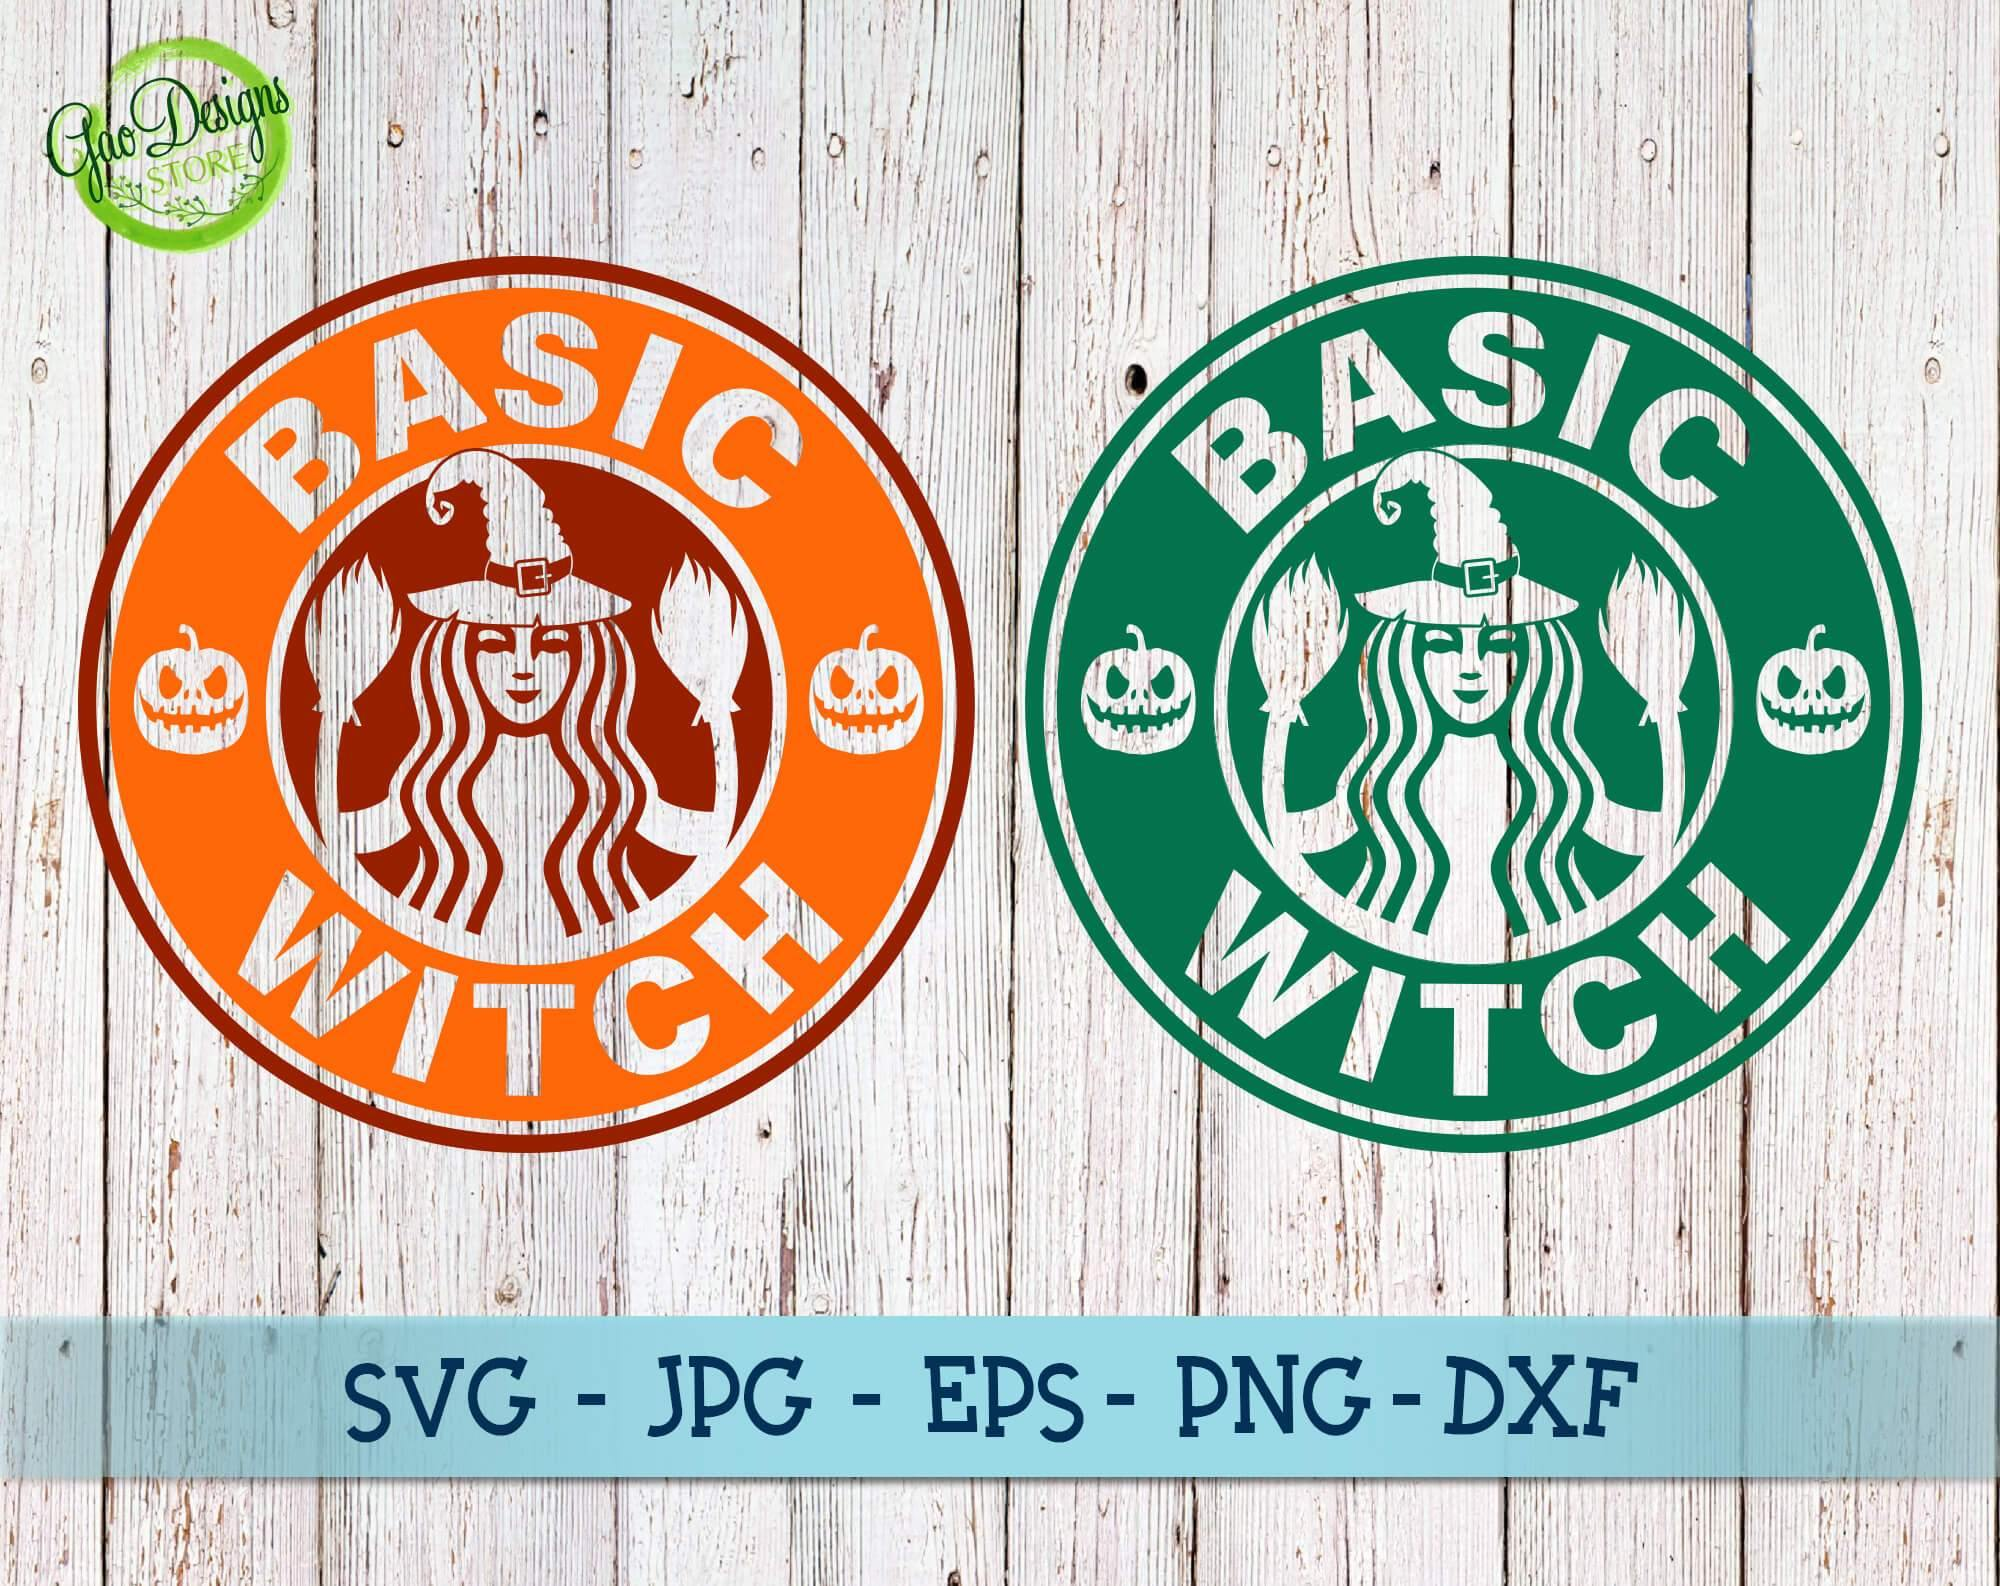 Basic Witch Svg Starbucks Logo Svg Basic Bitch Starbaks Diy Halloween Shirt Halloween Svg Witch Halloween Svg Gaodesigns Store